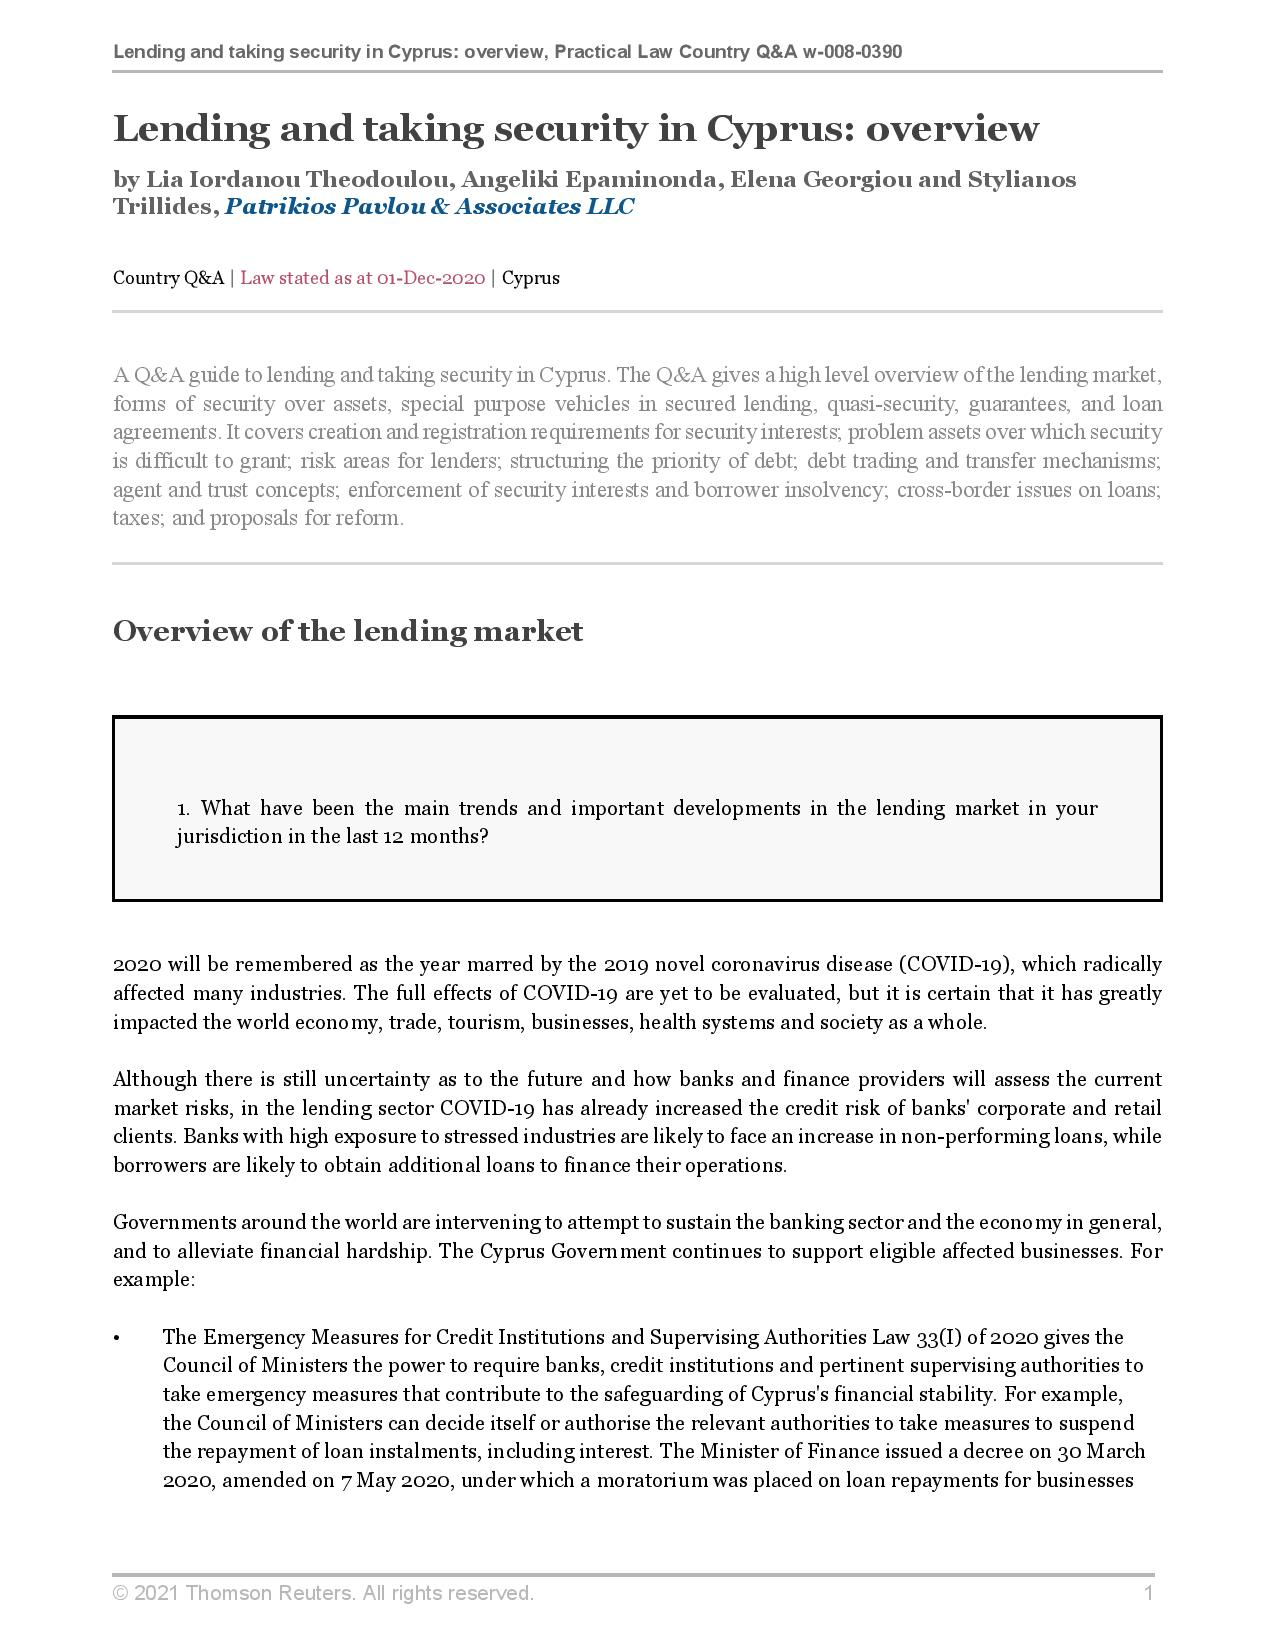 Patrikios Pavlou & Associates LLC: Lending and taking security in Cyprus: overview